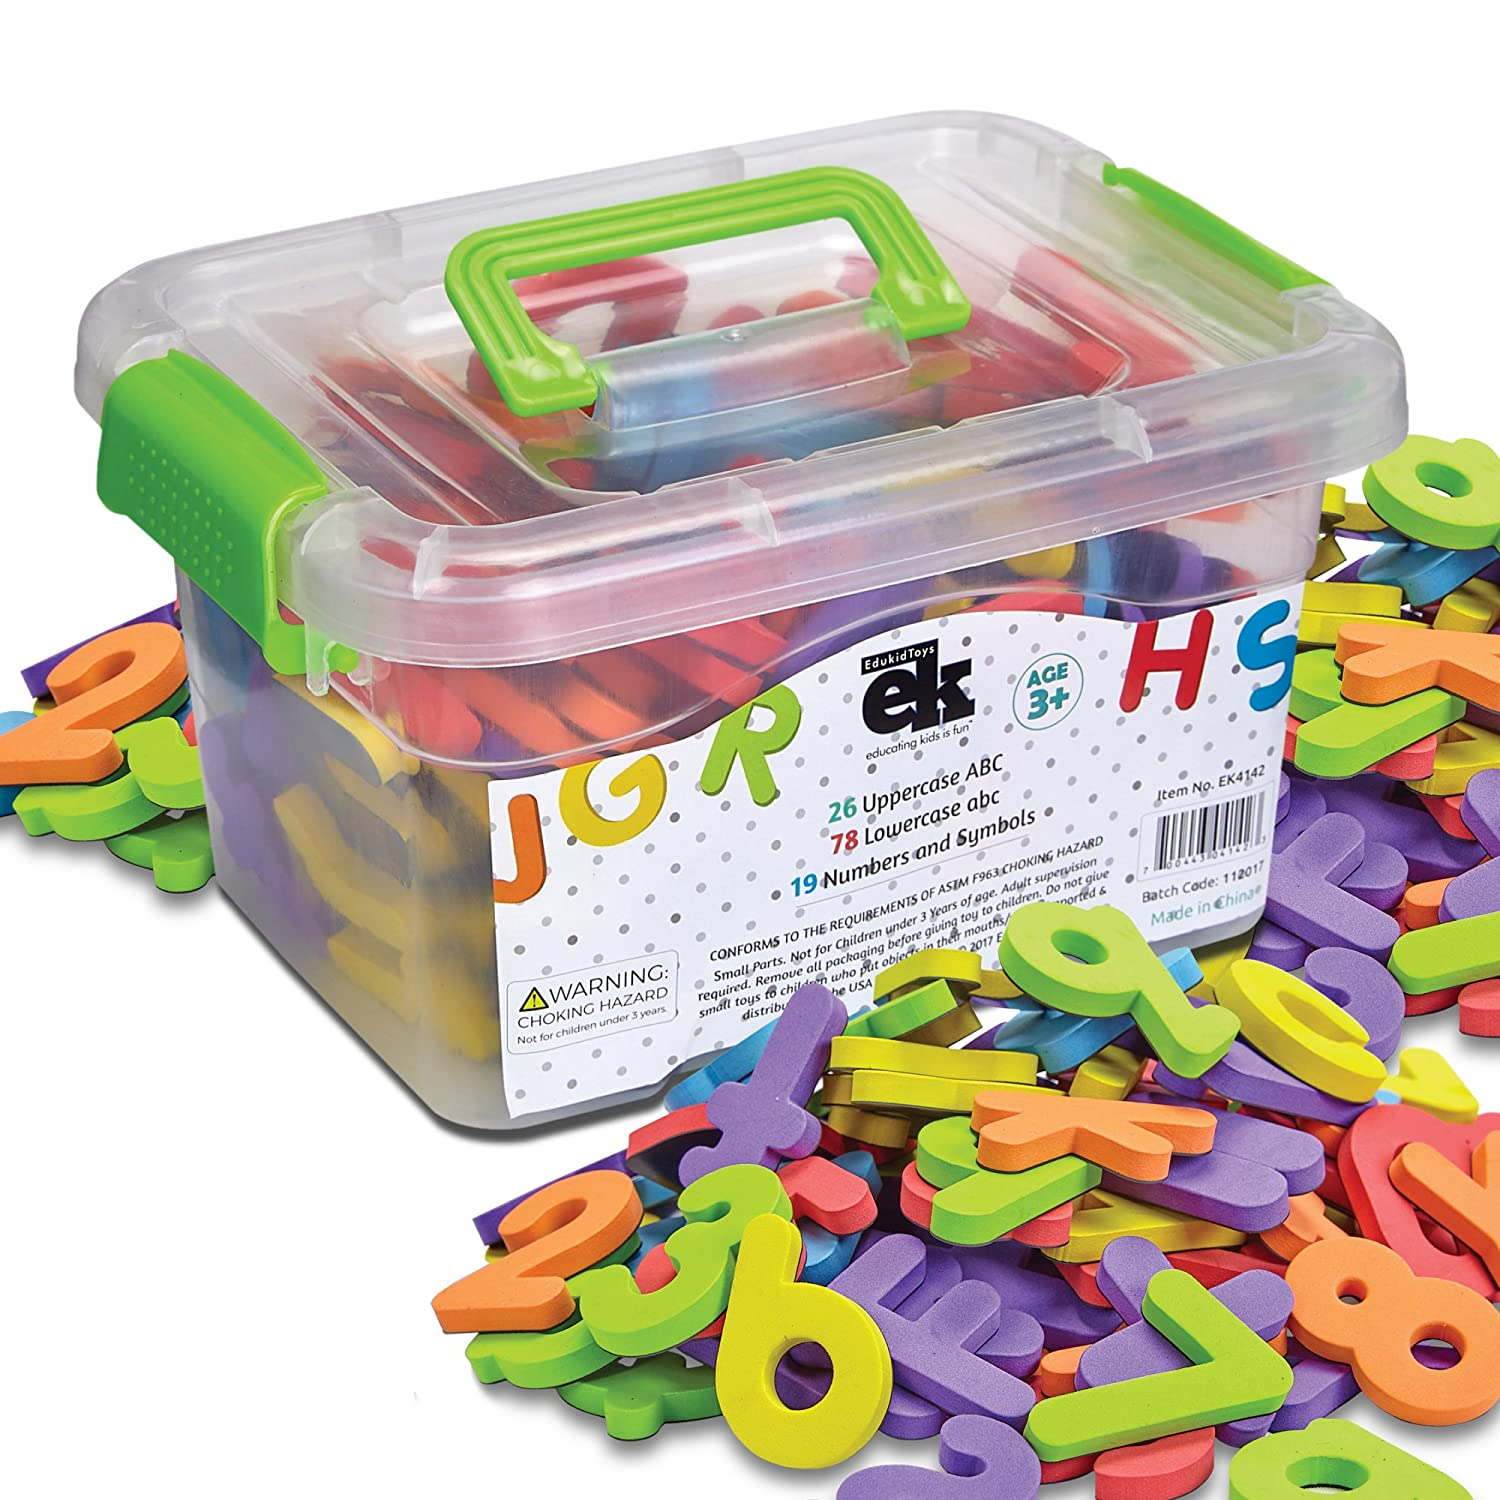 Magnetic Foam Letters and Numbers Premium Quality ABC 123 Foam Alphabet Magnets | Educational Toy for Preschool Learning Spelling Counting in Canister